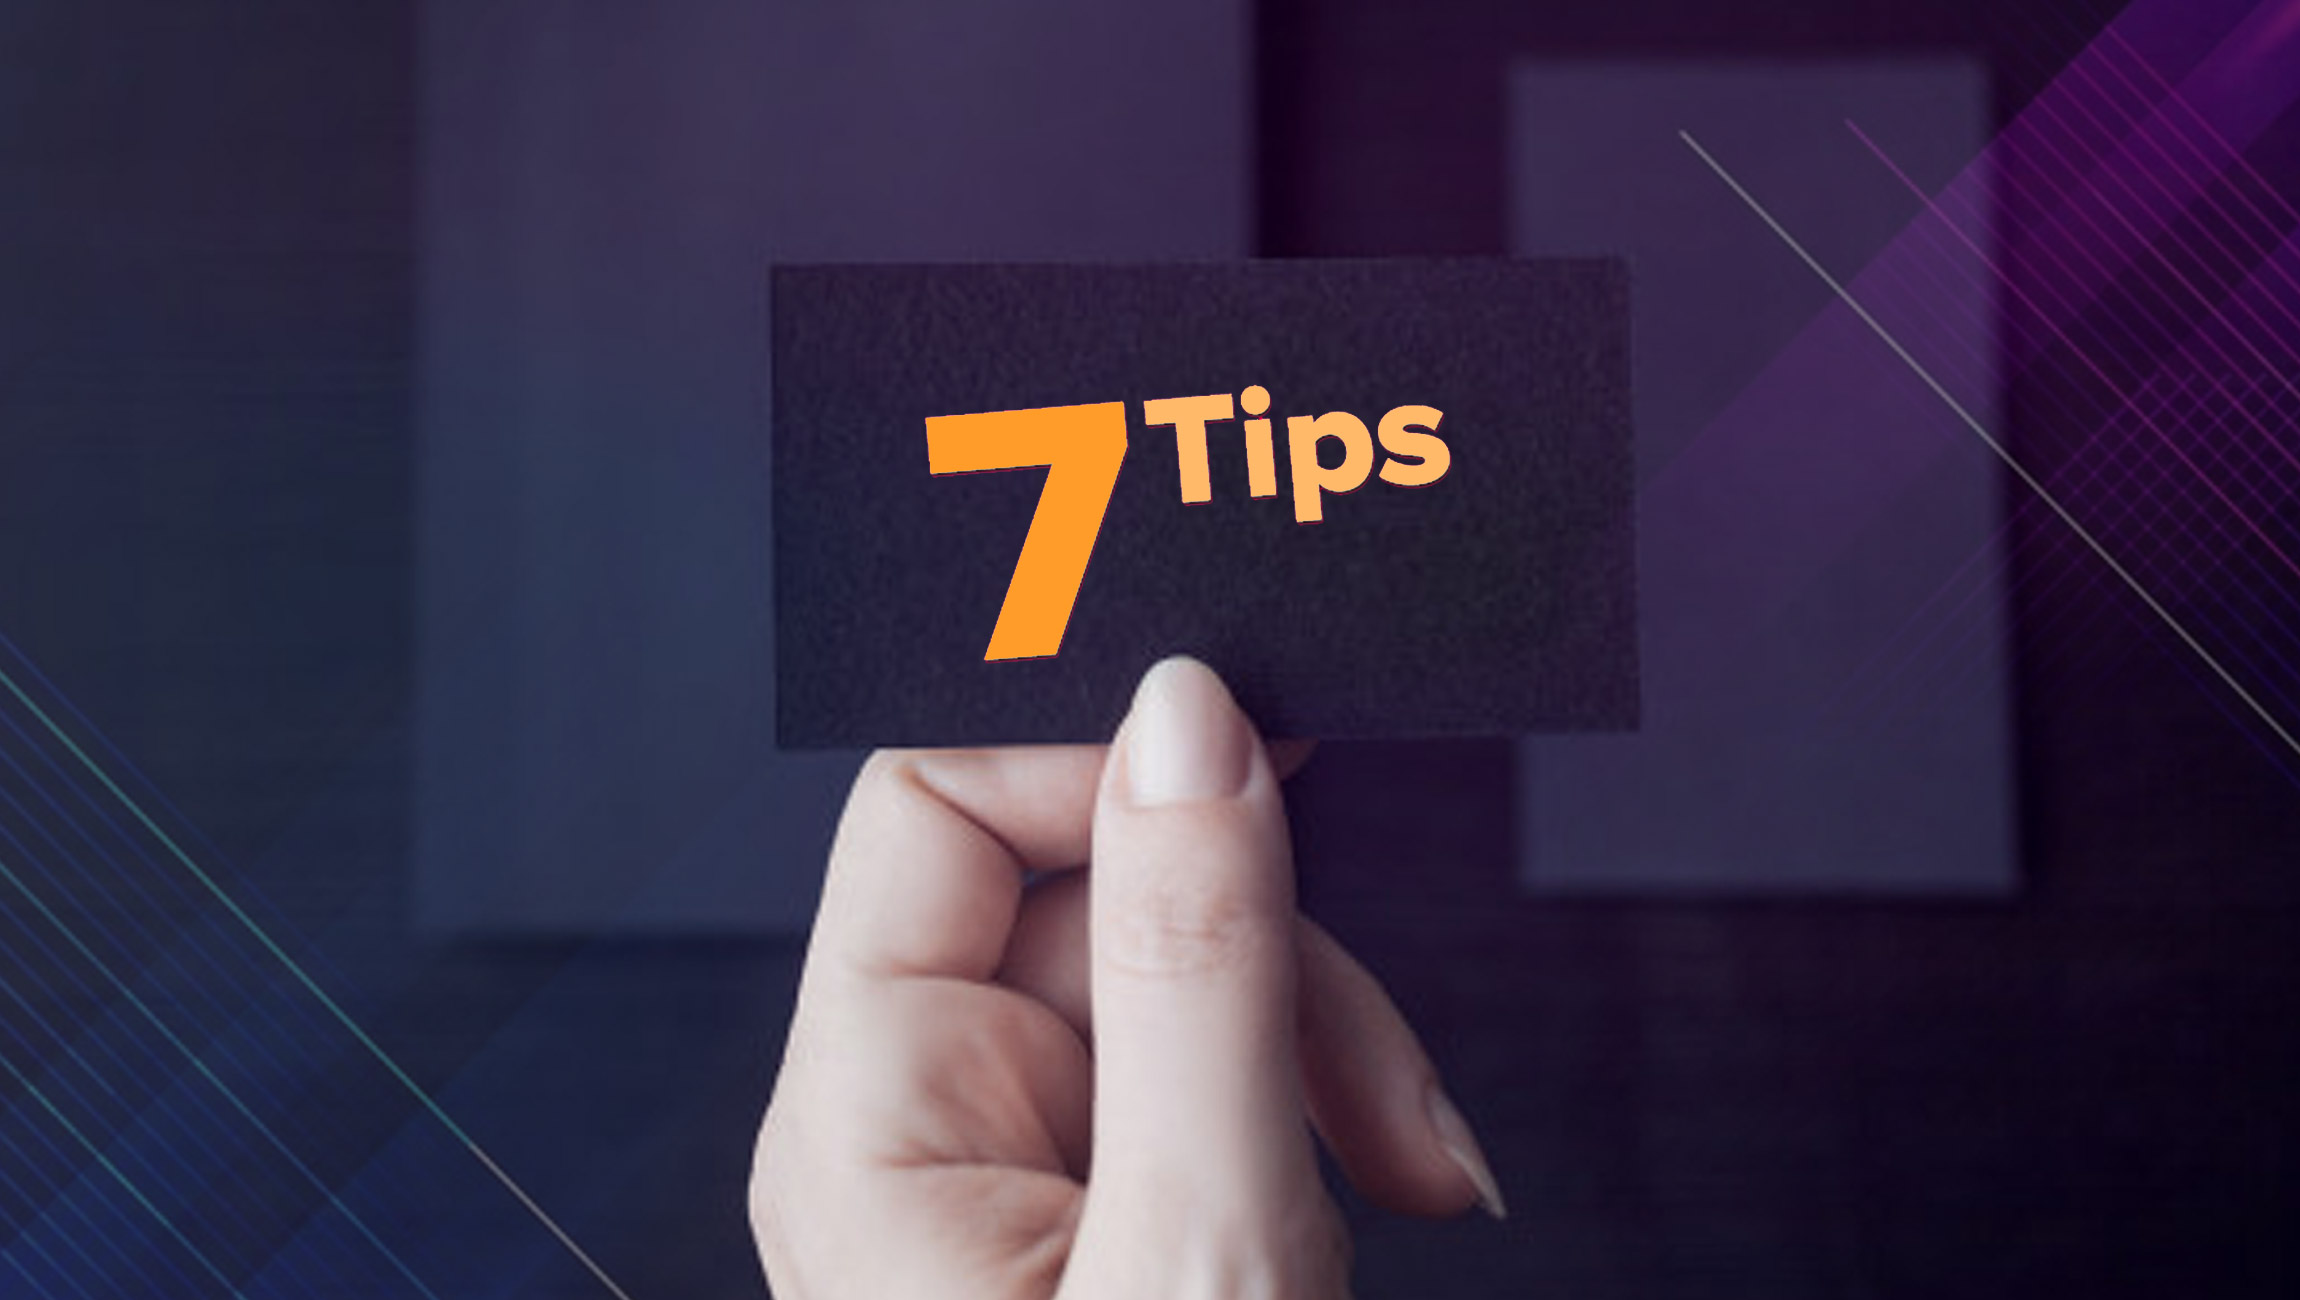 7 Tips for Creating a Customer-Centric Organization